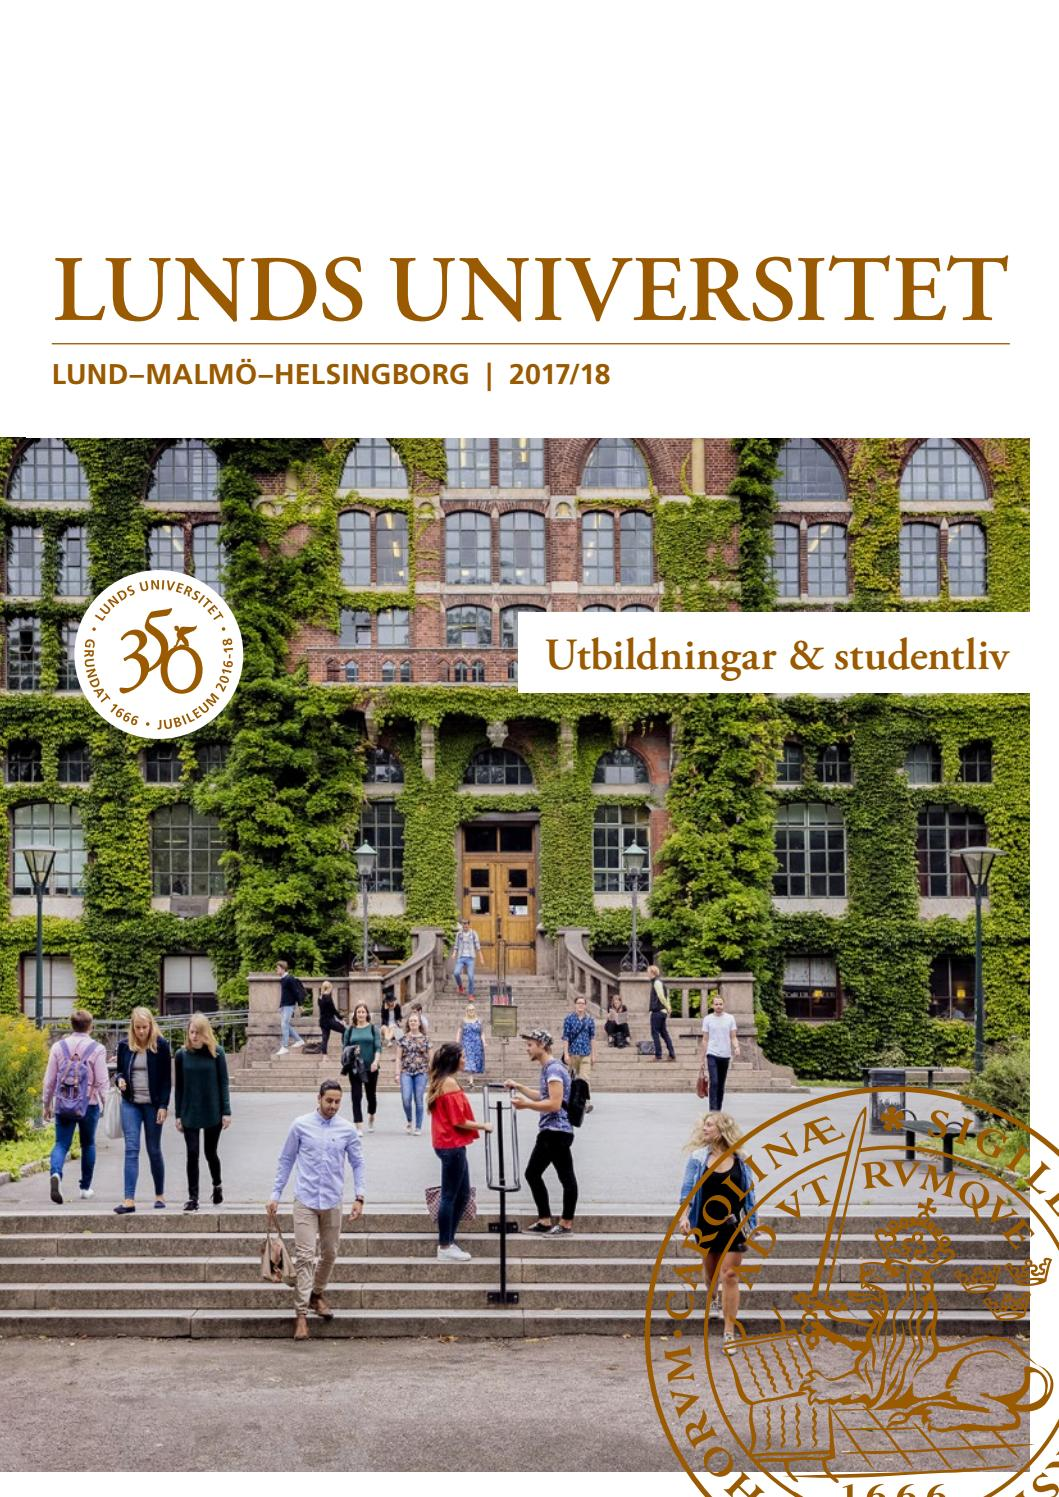 Uran borta fran lunds universitet